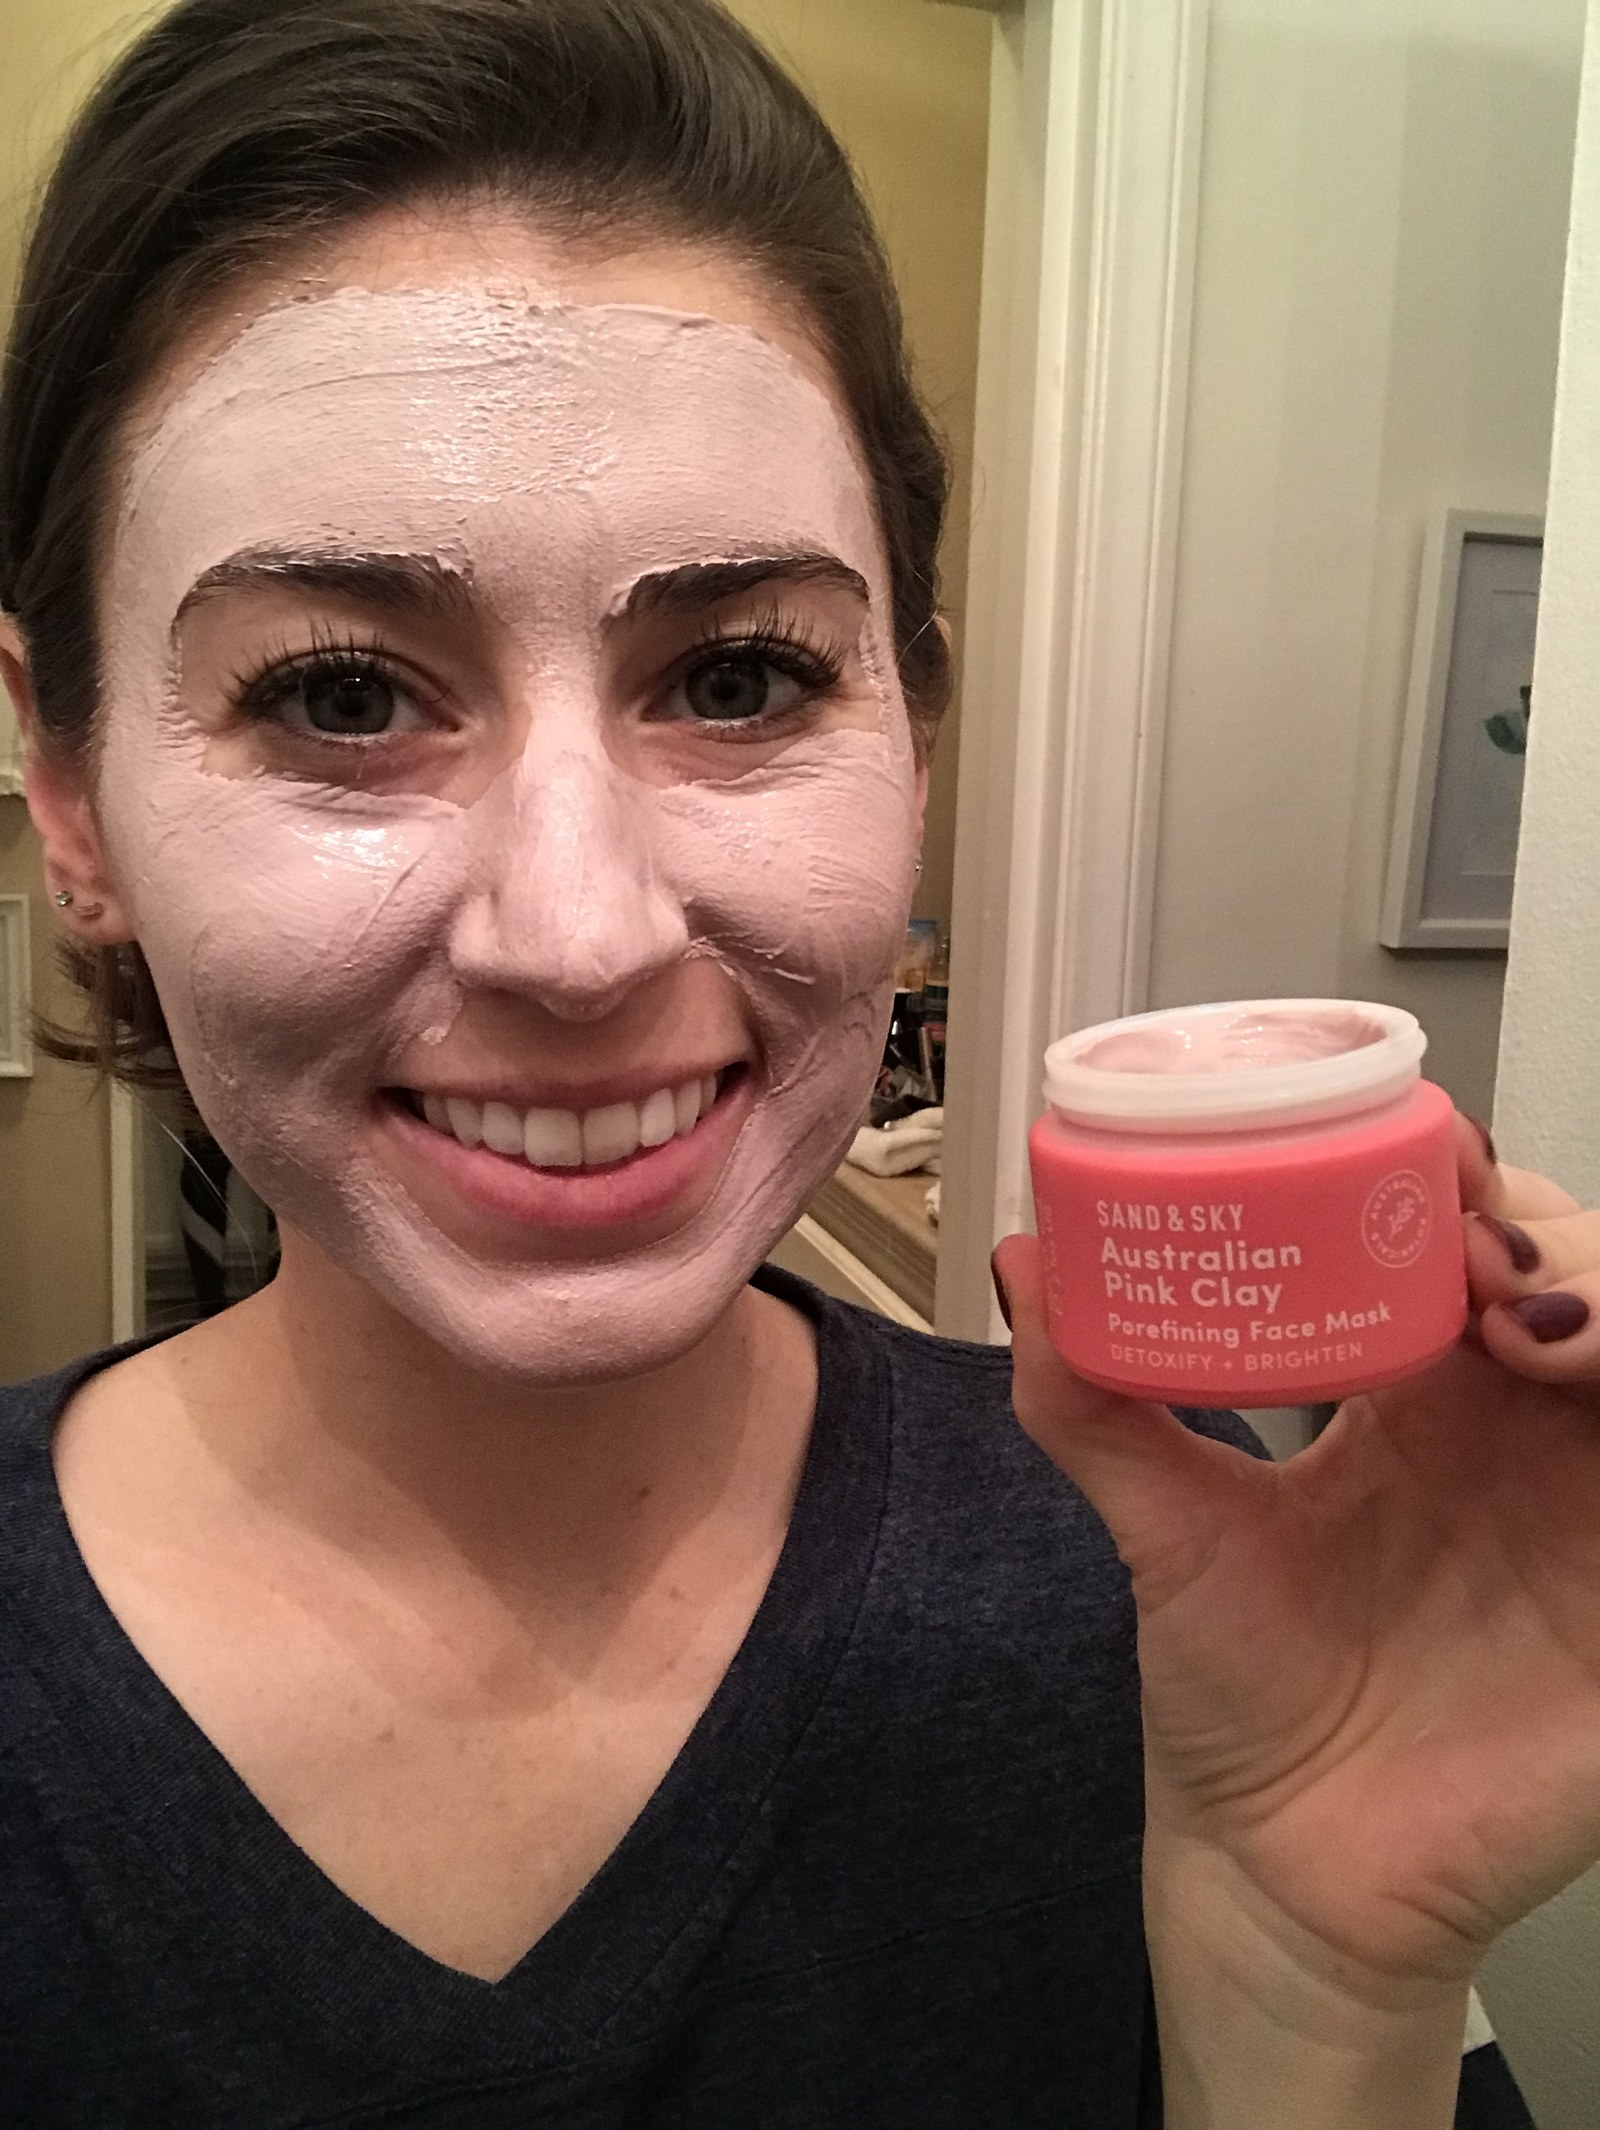 I Tried A Lot Of Skincare Products In 2018, And Here Are My Top 12 I'd Keep Using In 2019